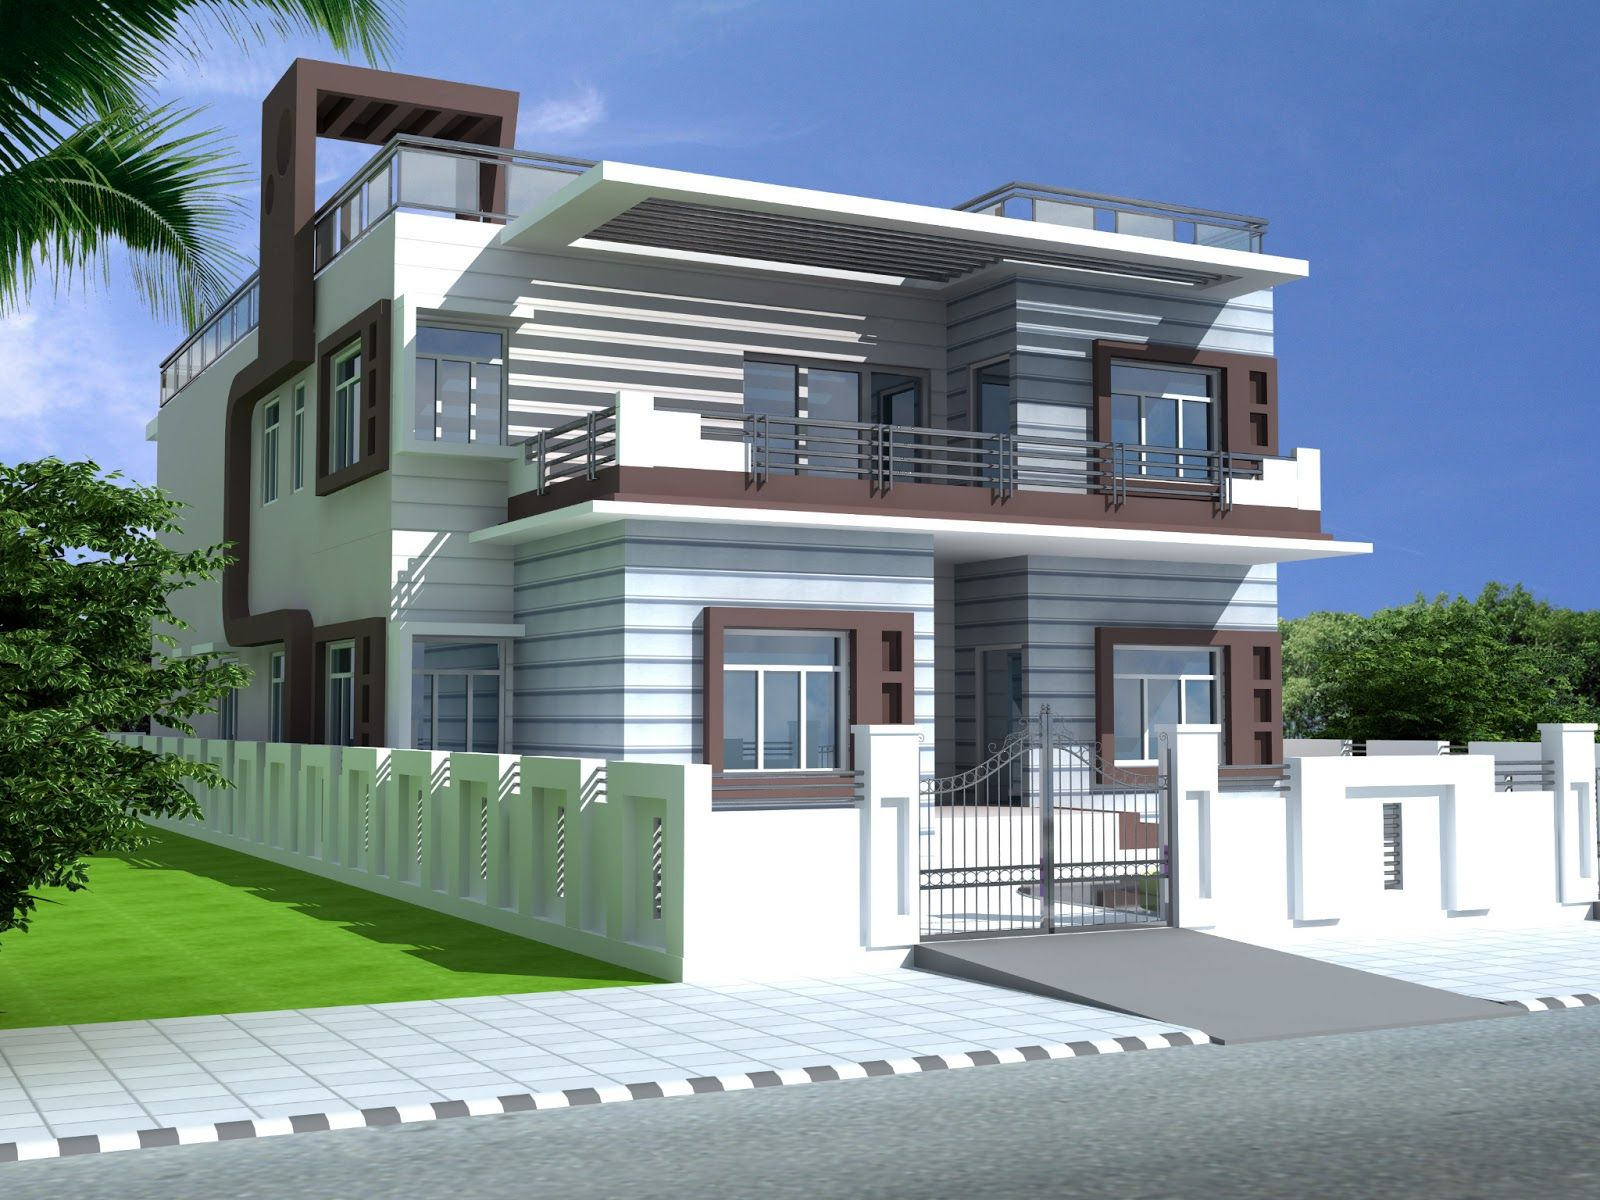 6 bedrooms duplex house design in 390m2 13m x 30m for Duplex townhouse designs